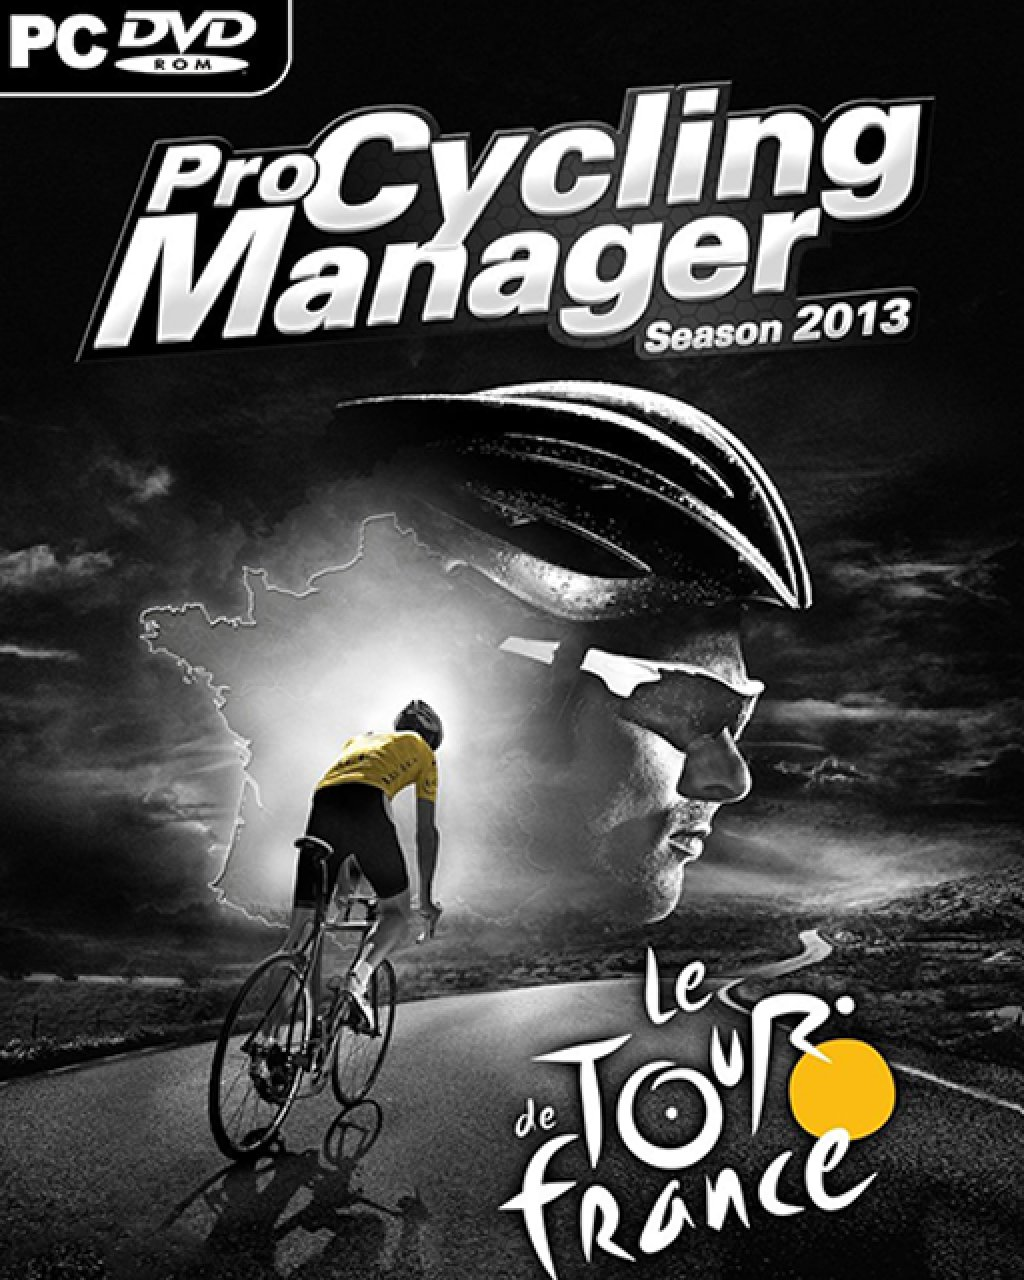 Pro Cycling Manager 2013 krabice